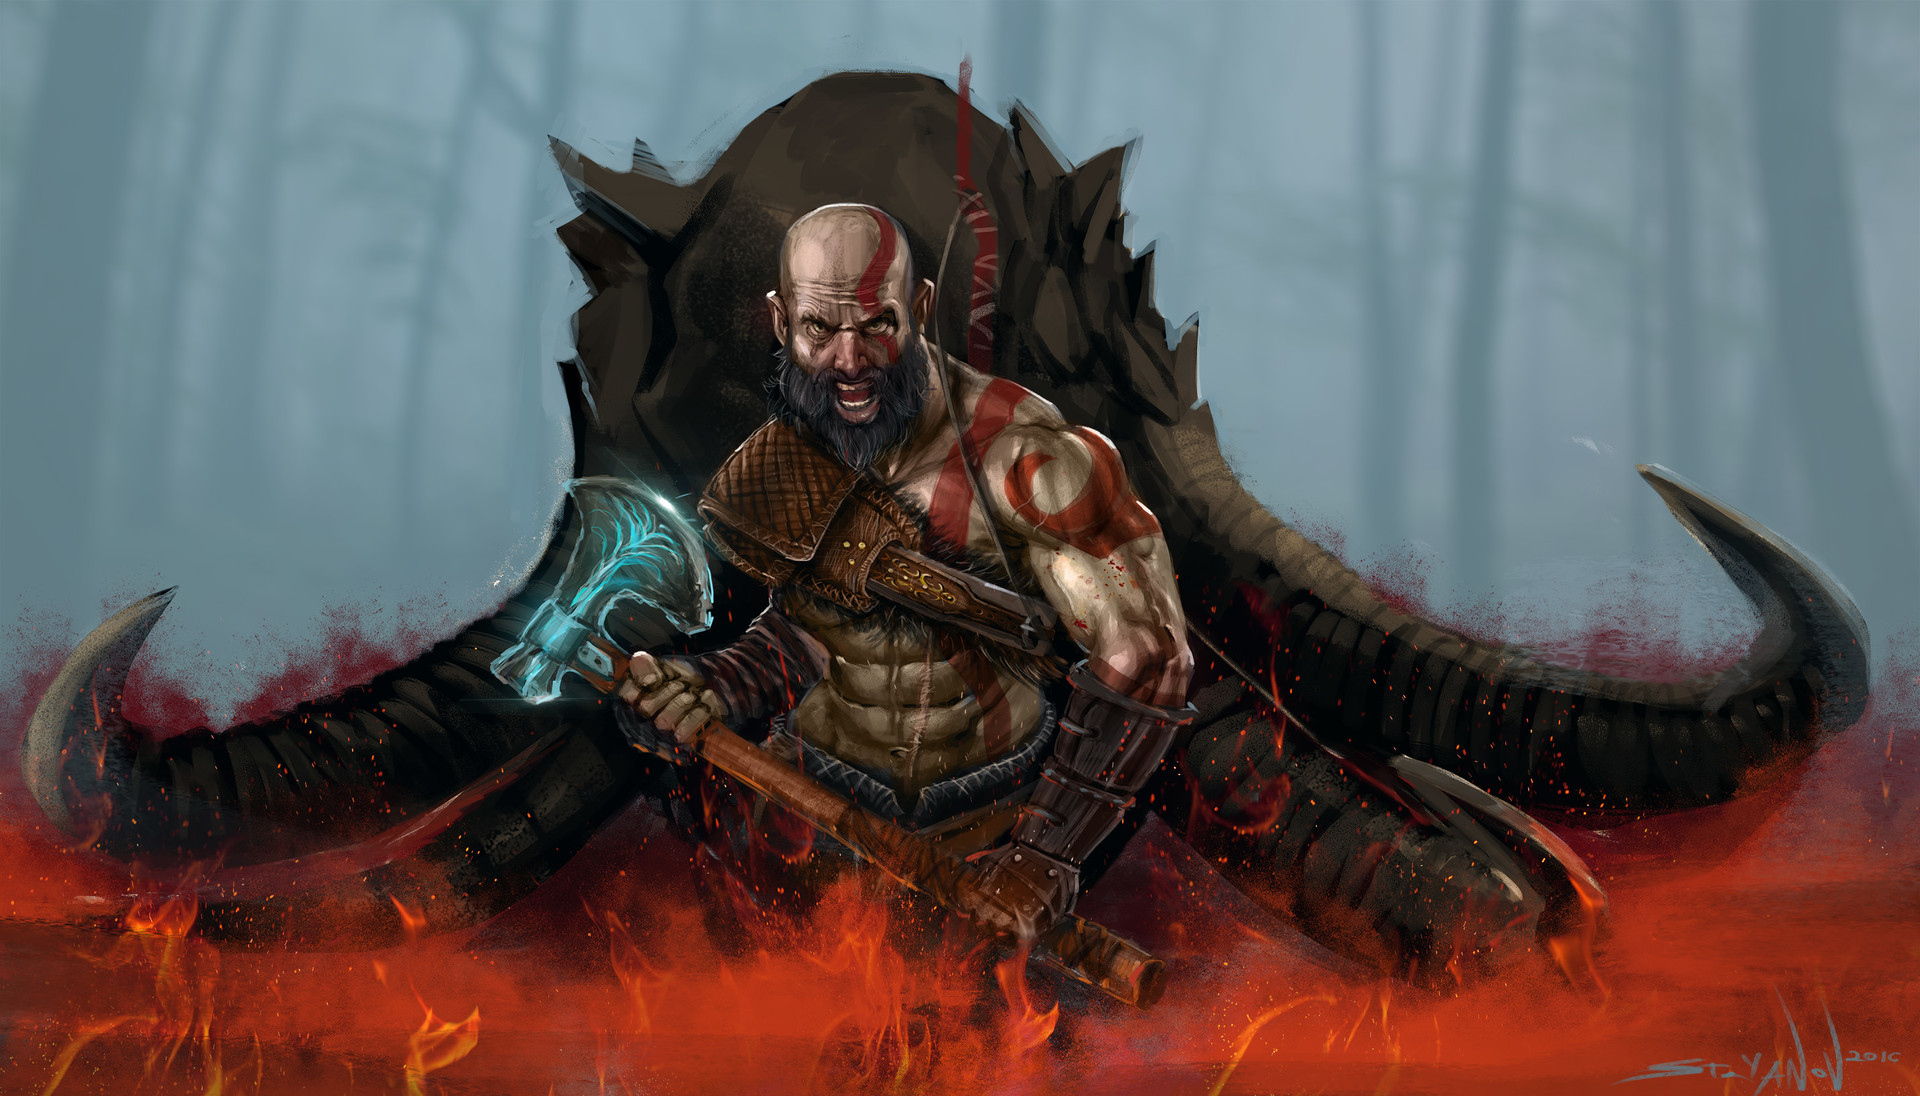 god of war 4 art 480x854 resolution